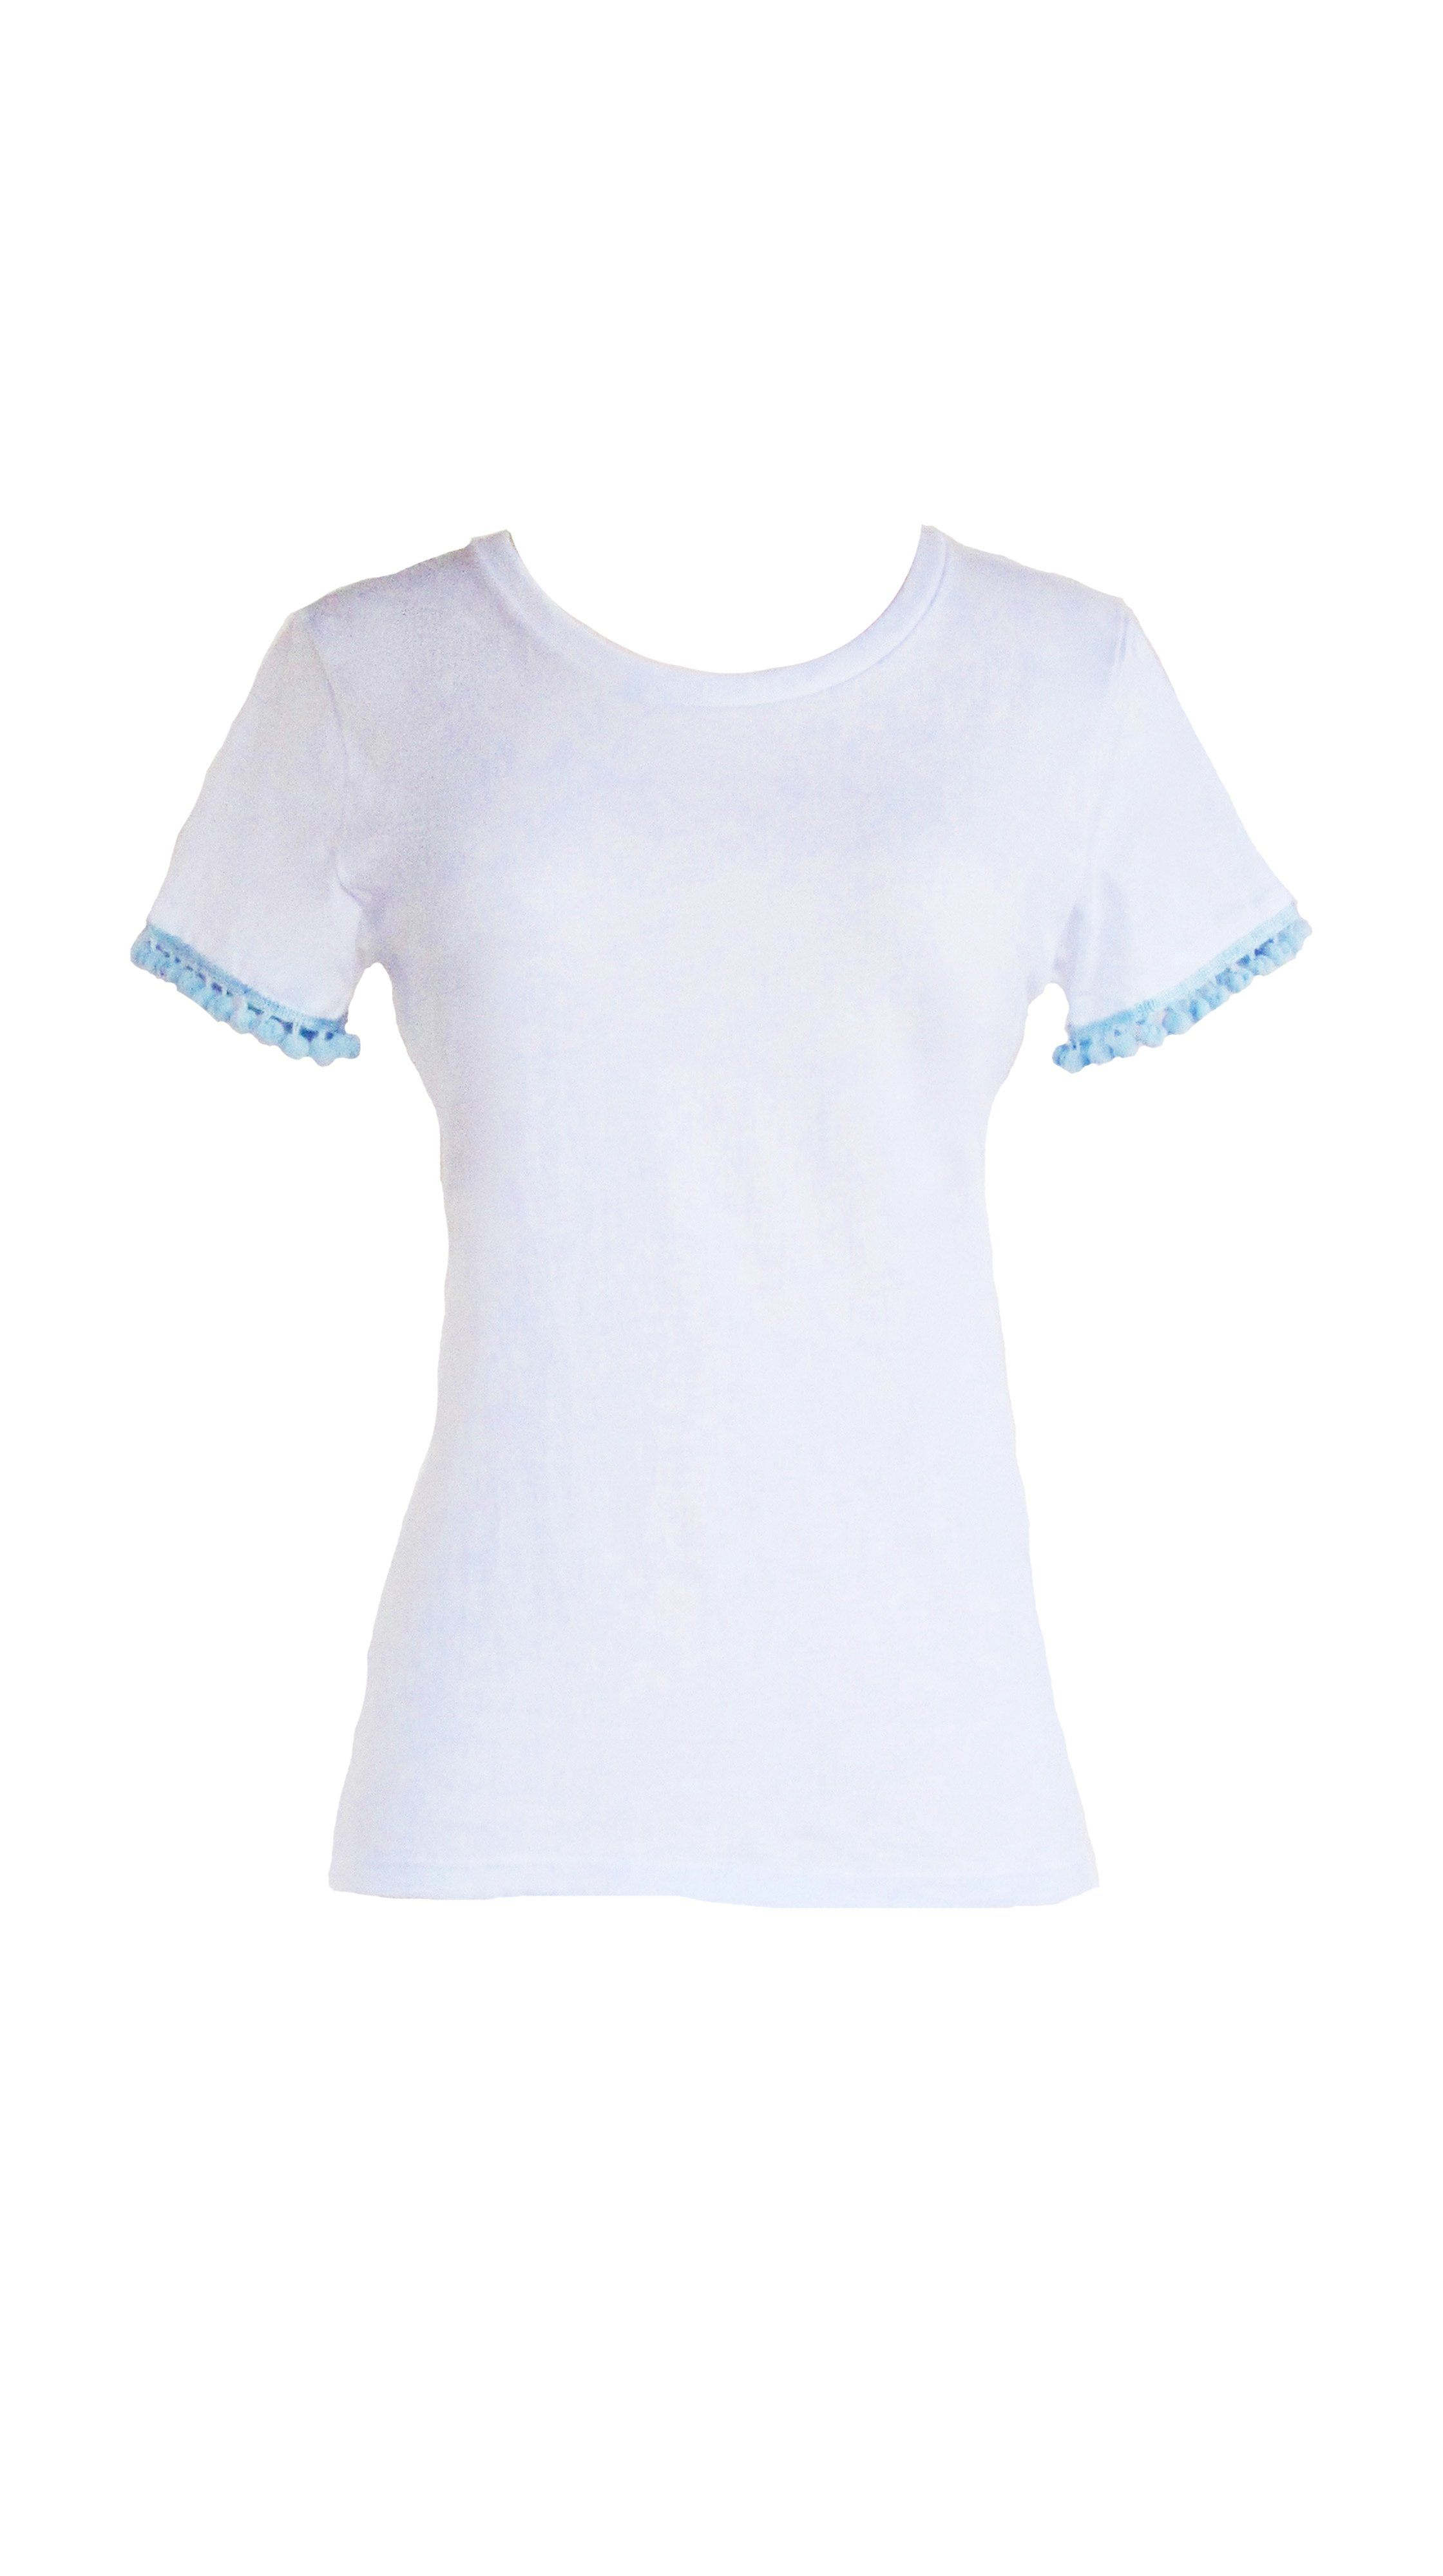 Love Poms Frill Top White Embellished T Shirt by Bespoke Southerly | Nineteenth Amendment